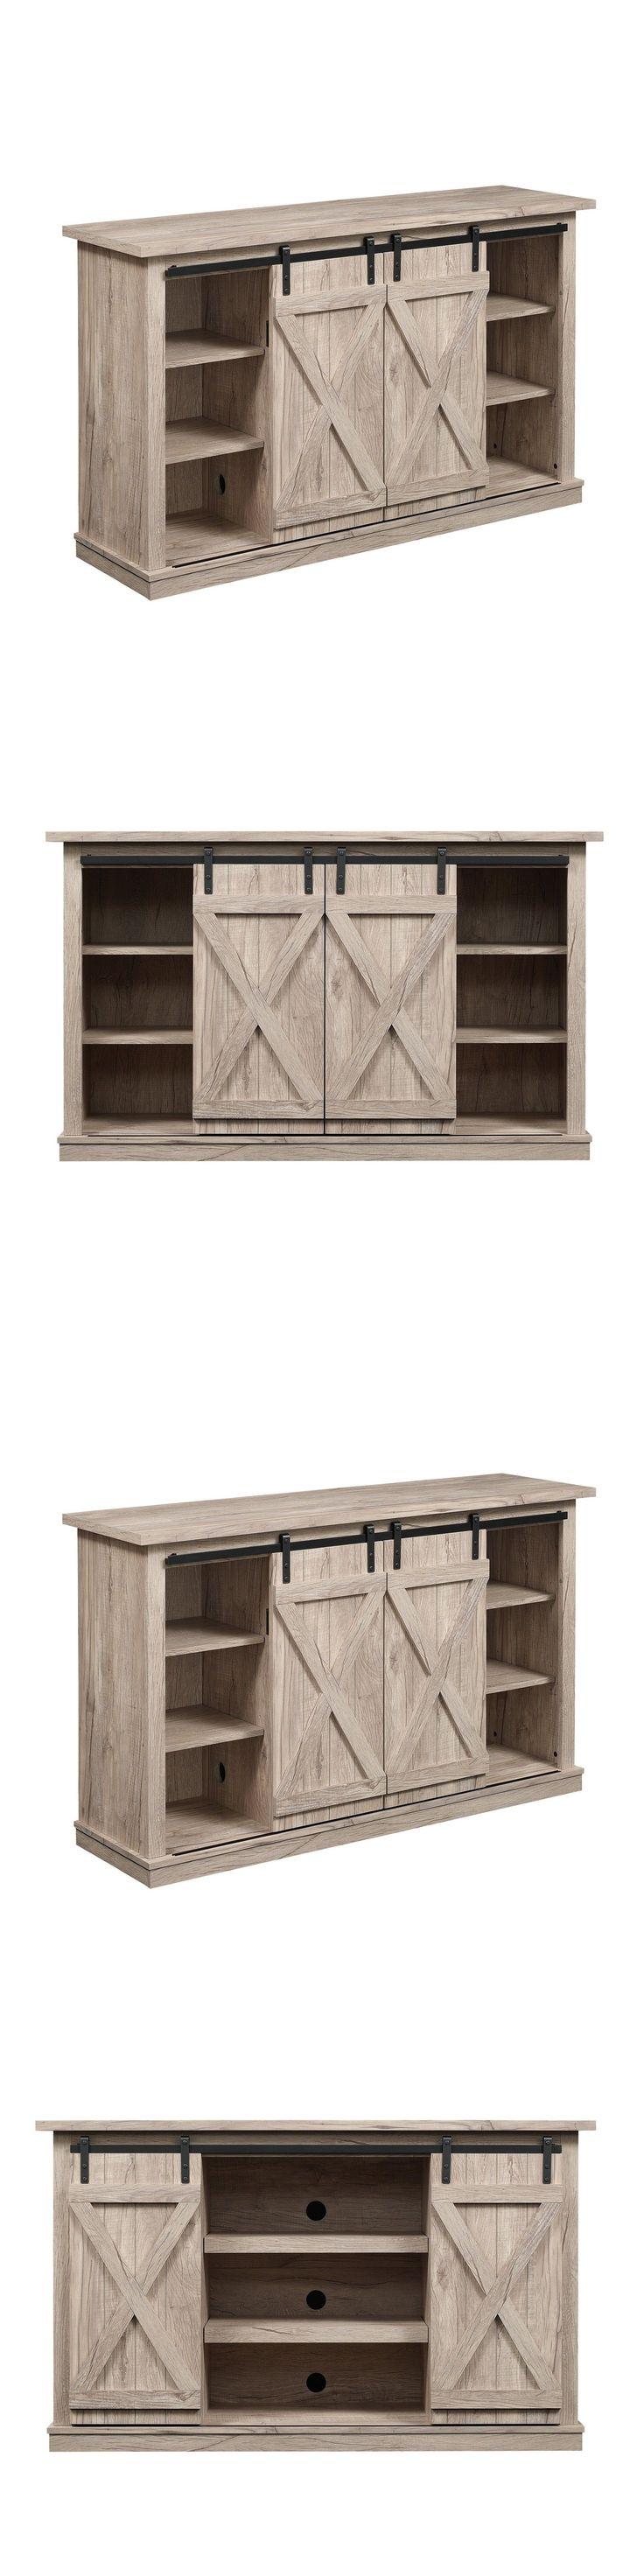 Home shop live tv stands chunky stretch tv stand - Entertainment Units Tv Stands 20488 Rustic Entertainment Center Tv Stand Console Wood Dorm Living Room